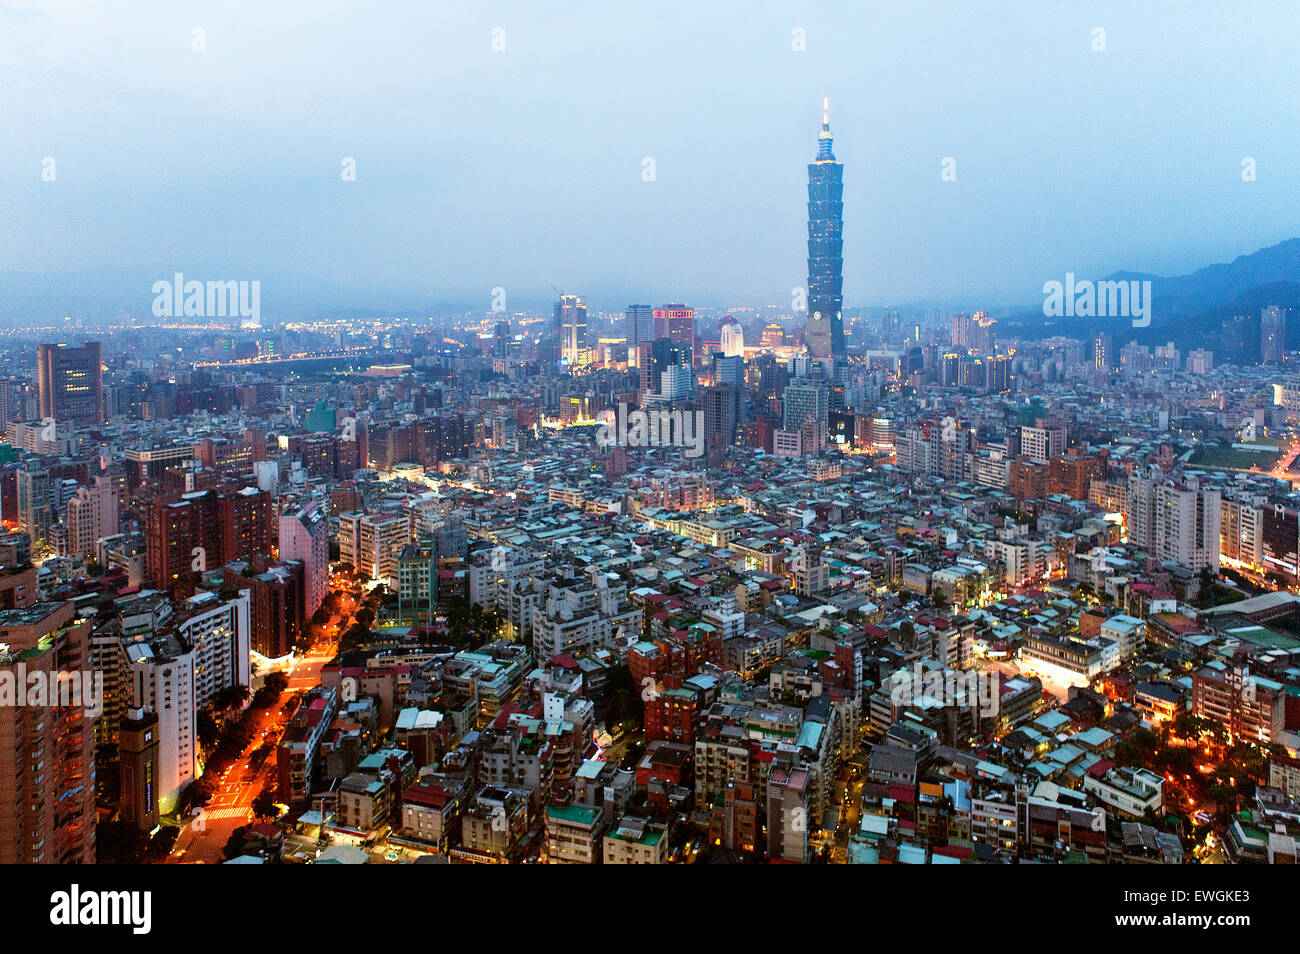 Taipei 101 building at dusk. Taiwan - Stock Image